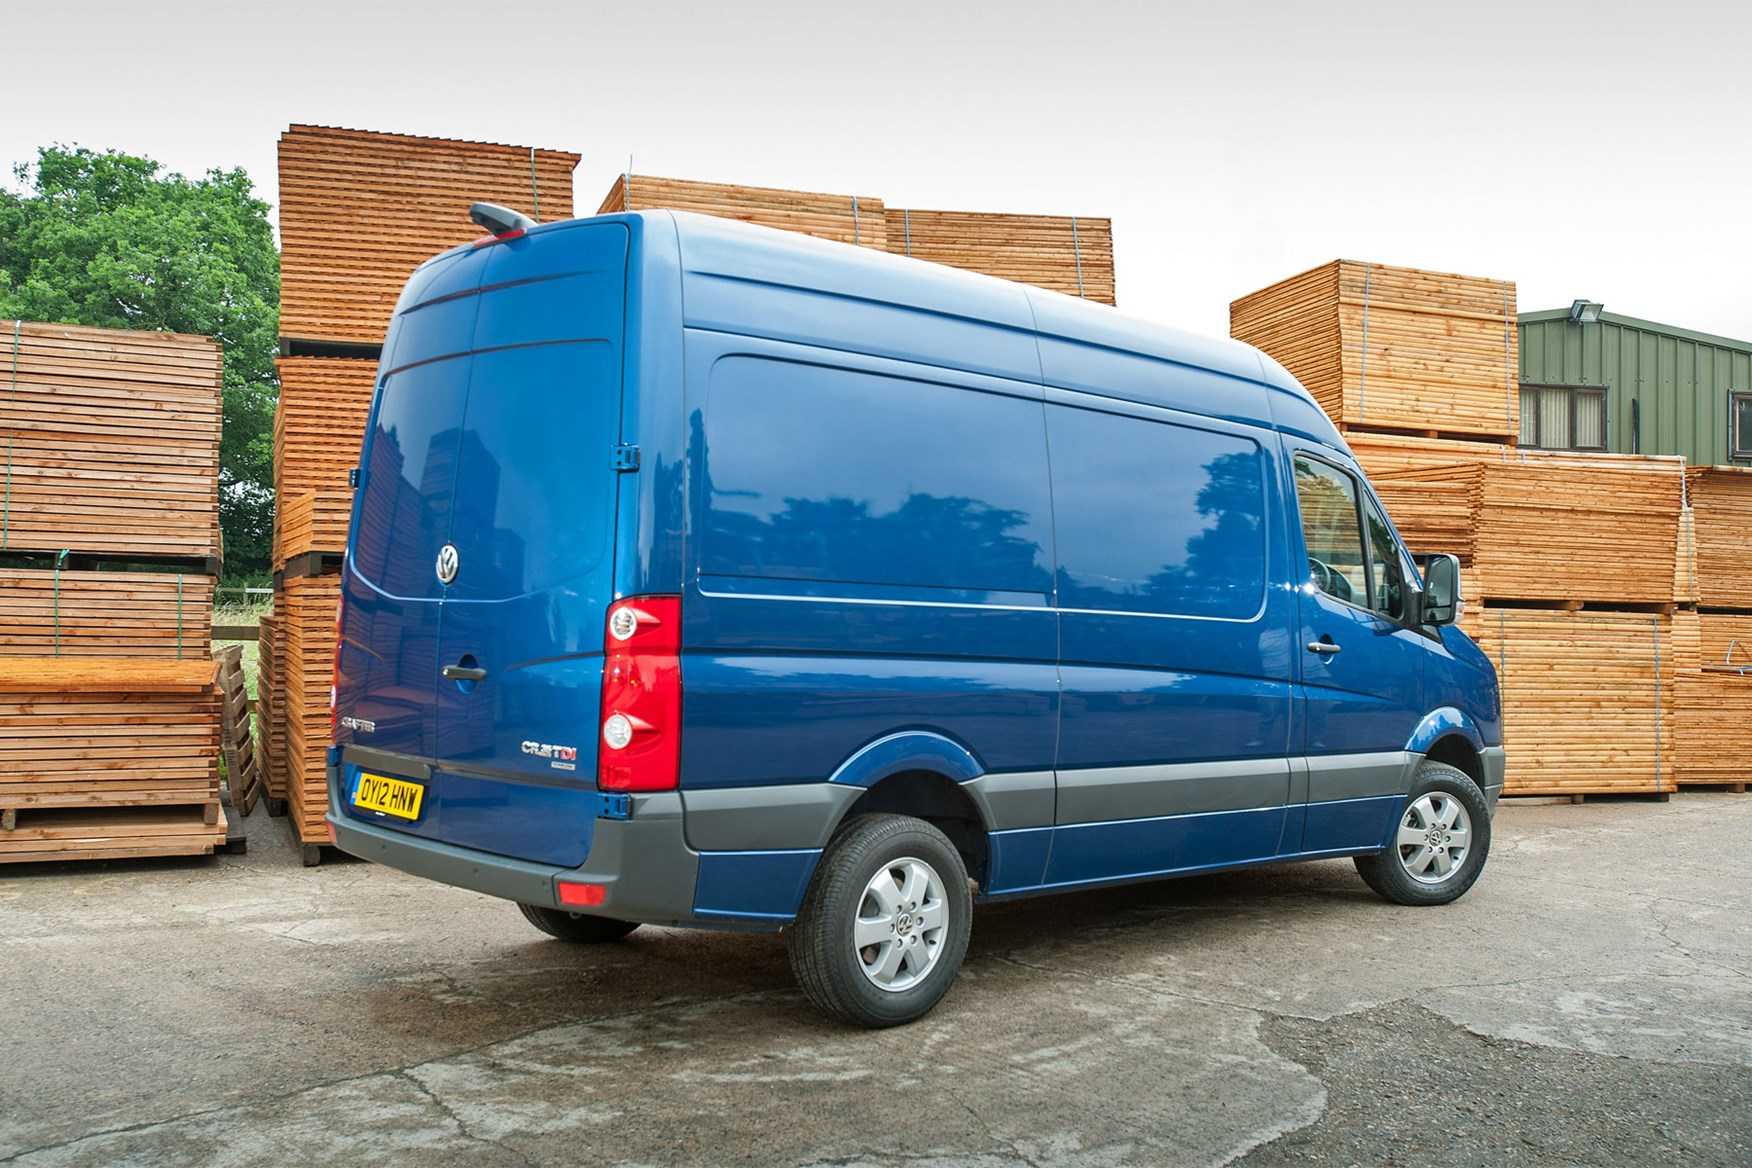 VW Crafter (2011-2016) rear view